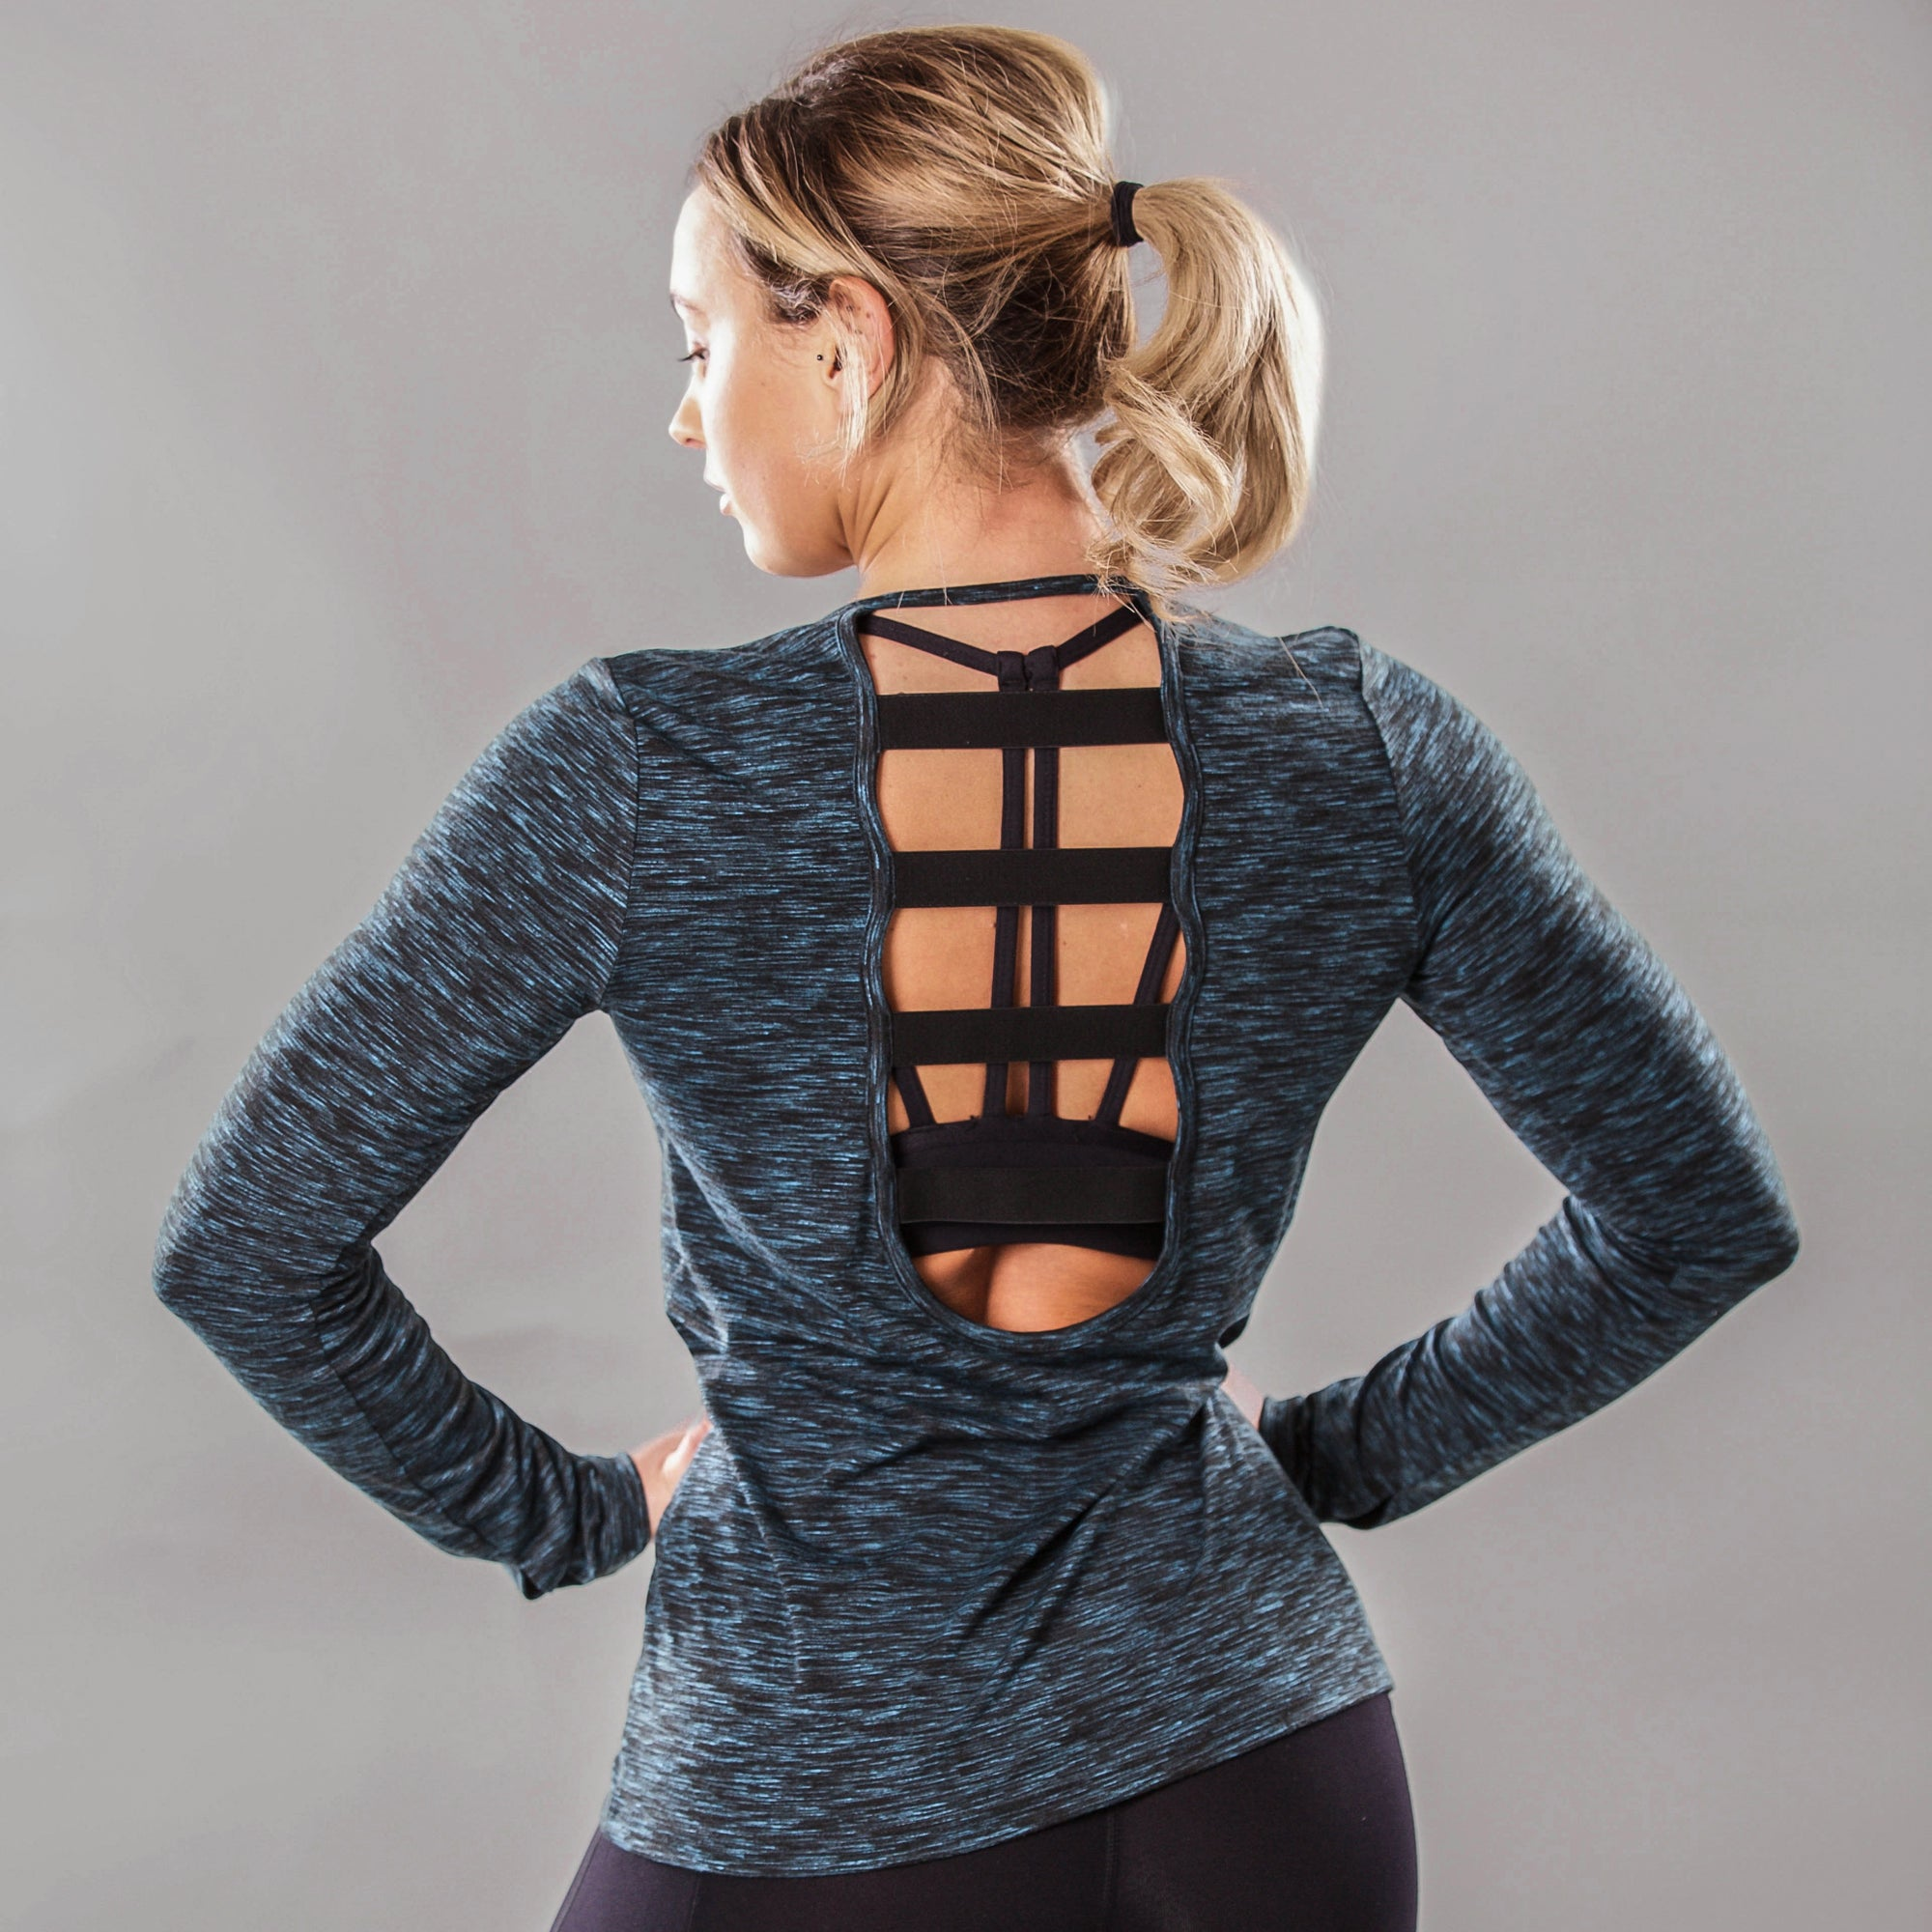 Solar Long Sleeve Top in Teal / Black